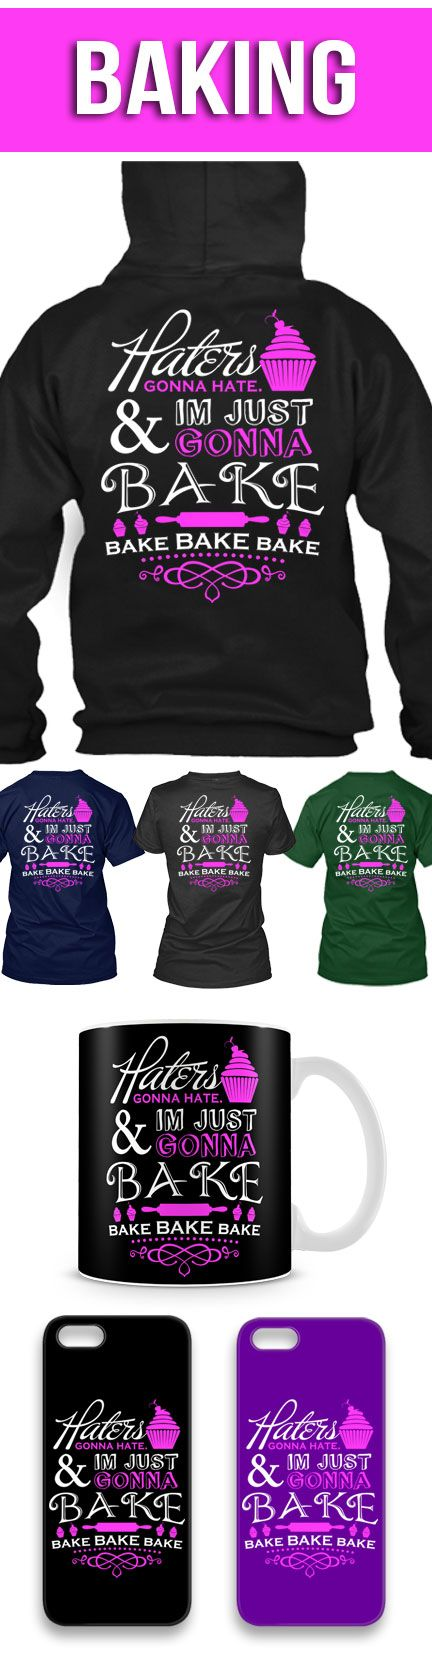 I'm Just Gonna Bake Shirts! Click The Image To Buy It Now or Tag Someone You Want To Buy This For.  #baking